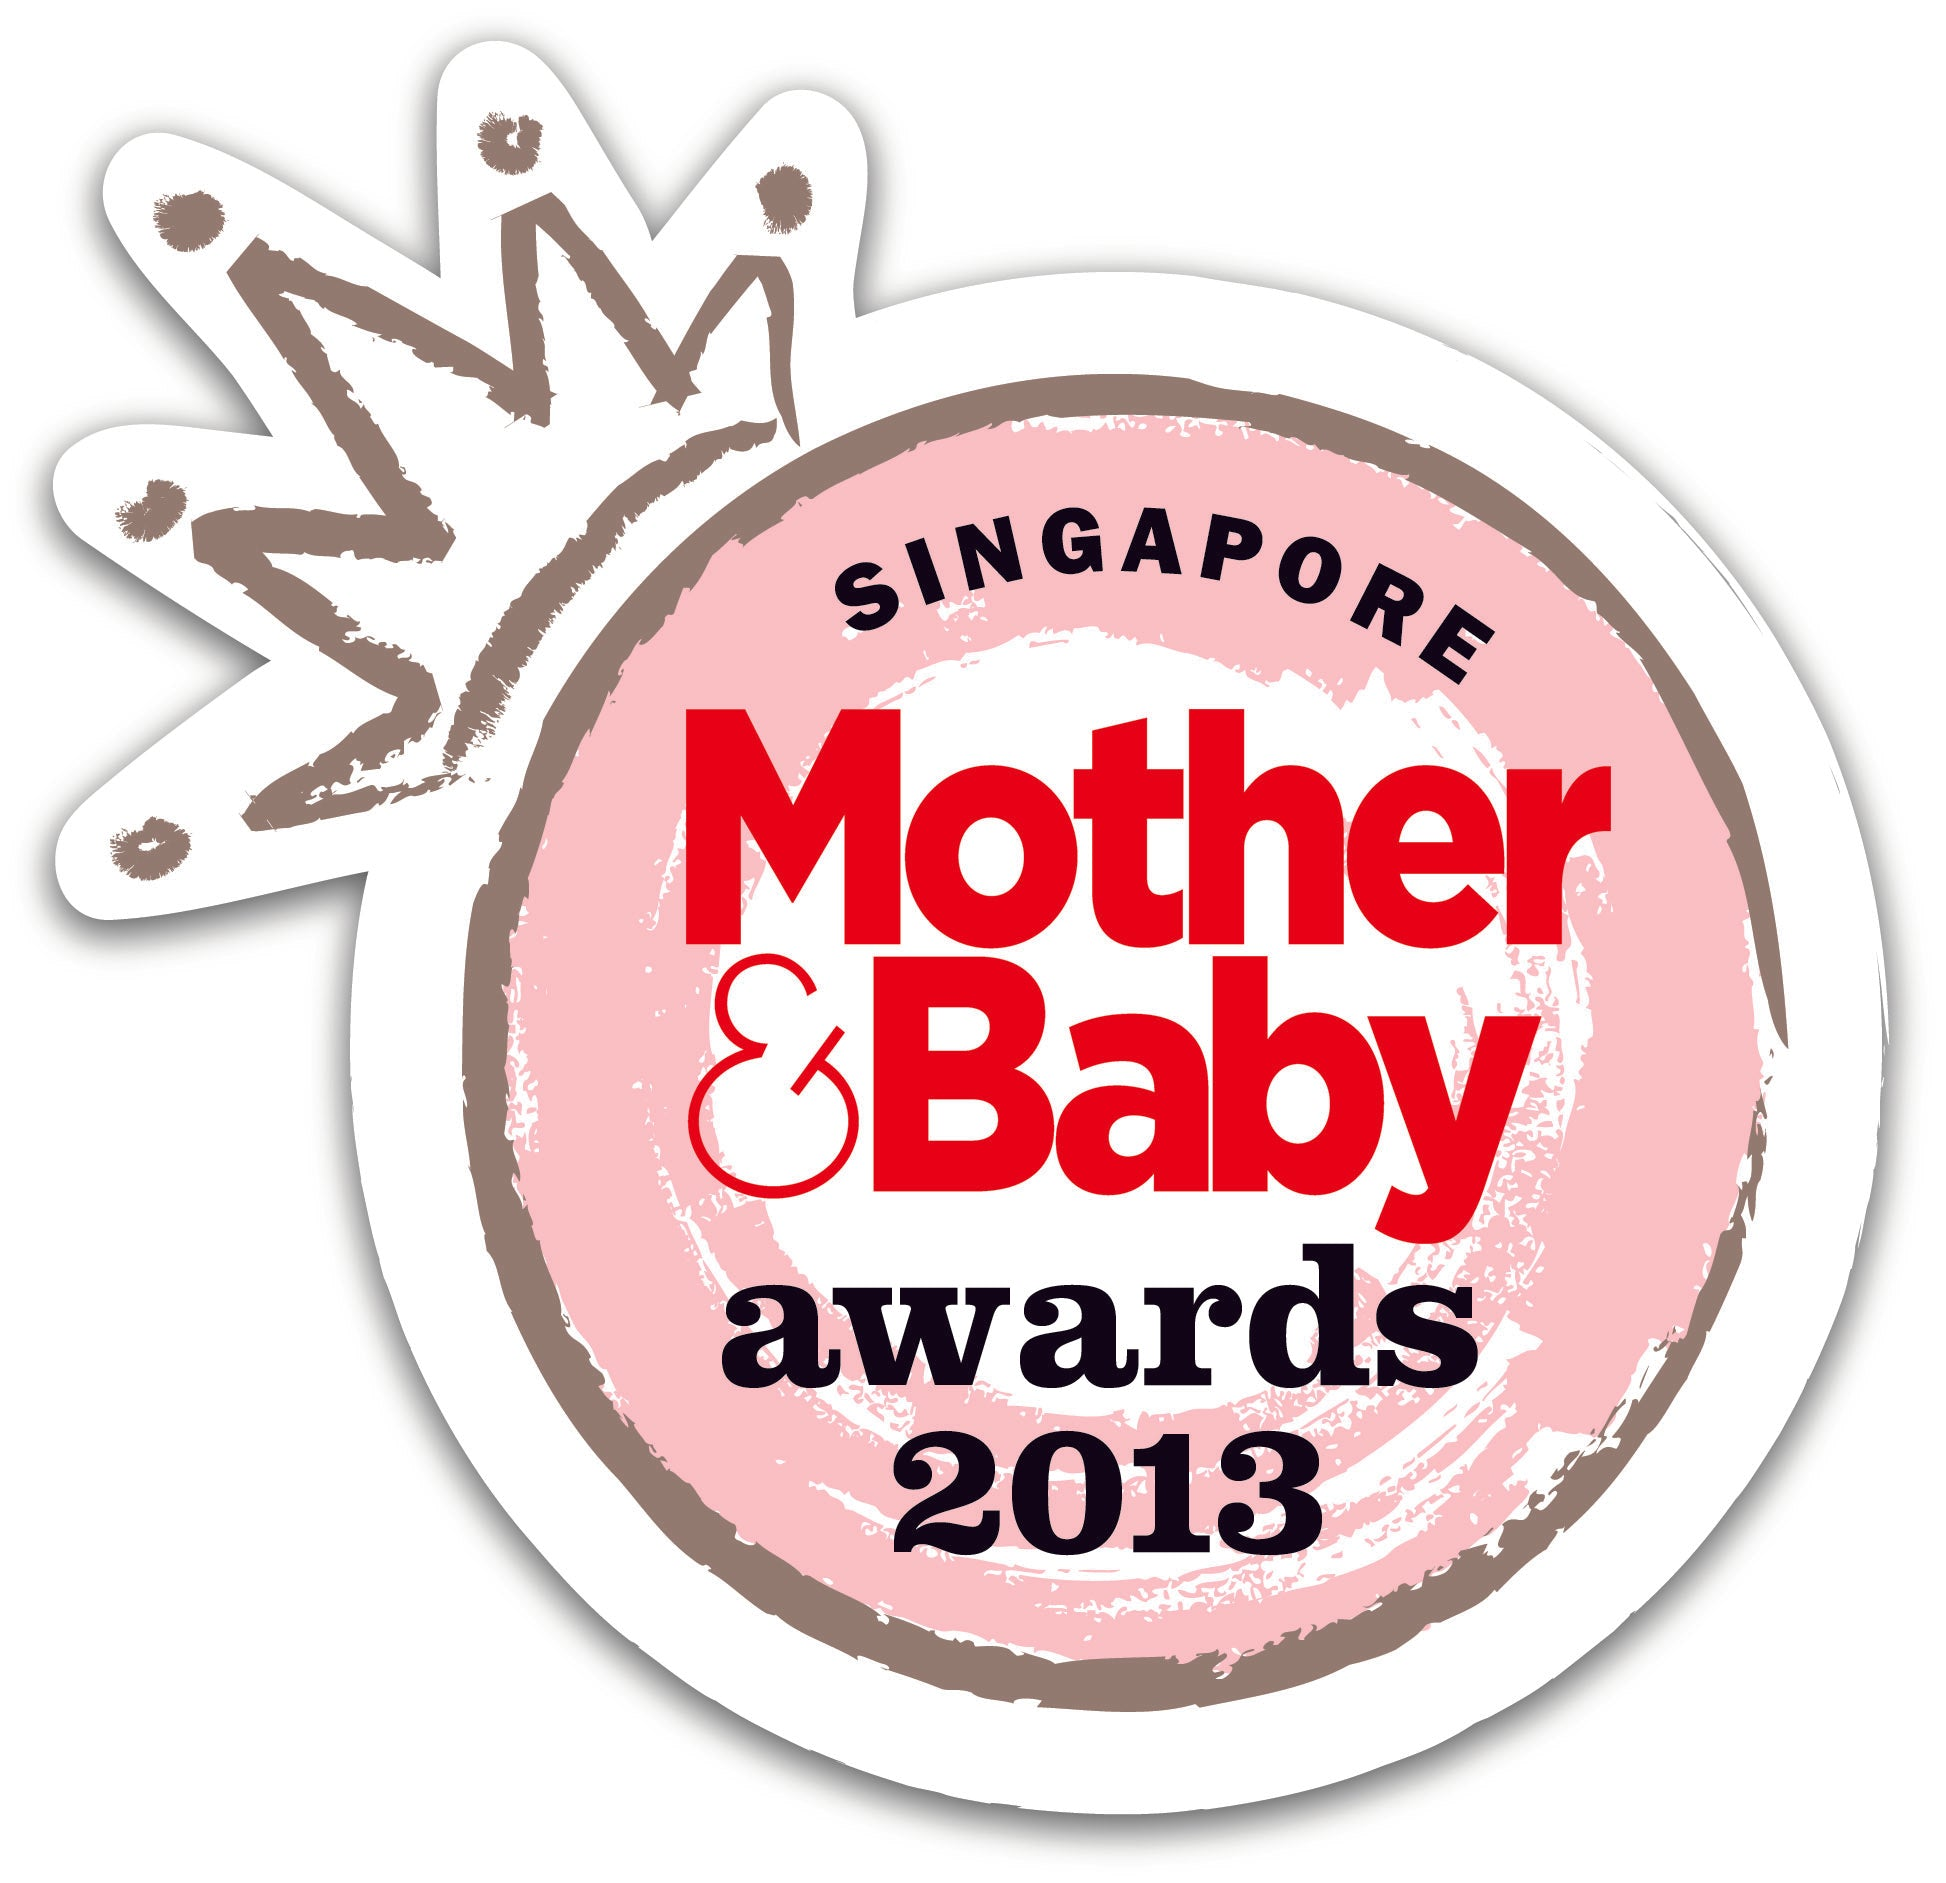 Singapore Mother & Baby Awards 2013